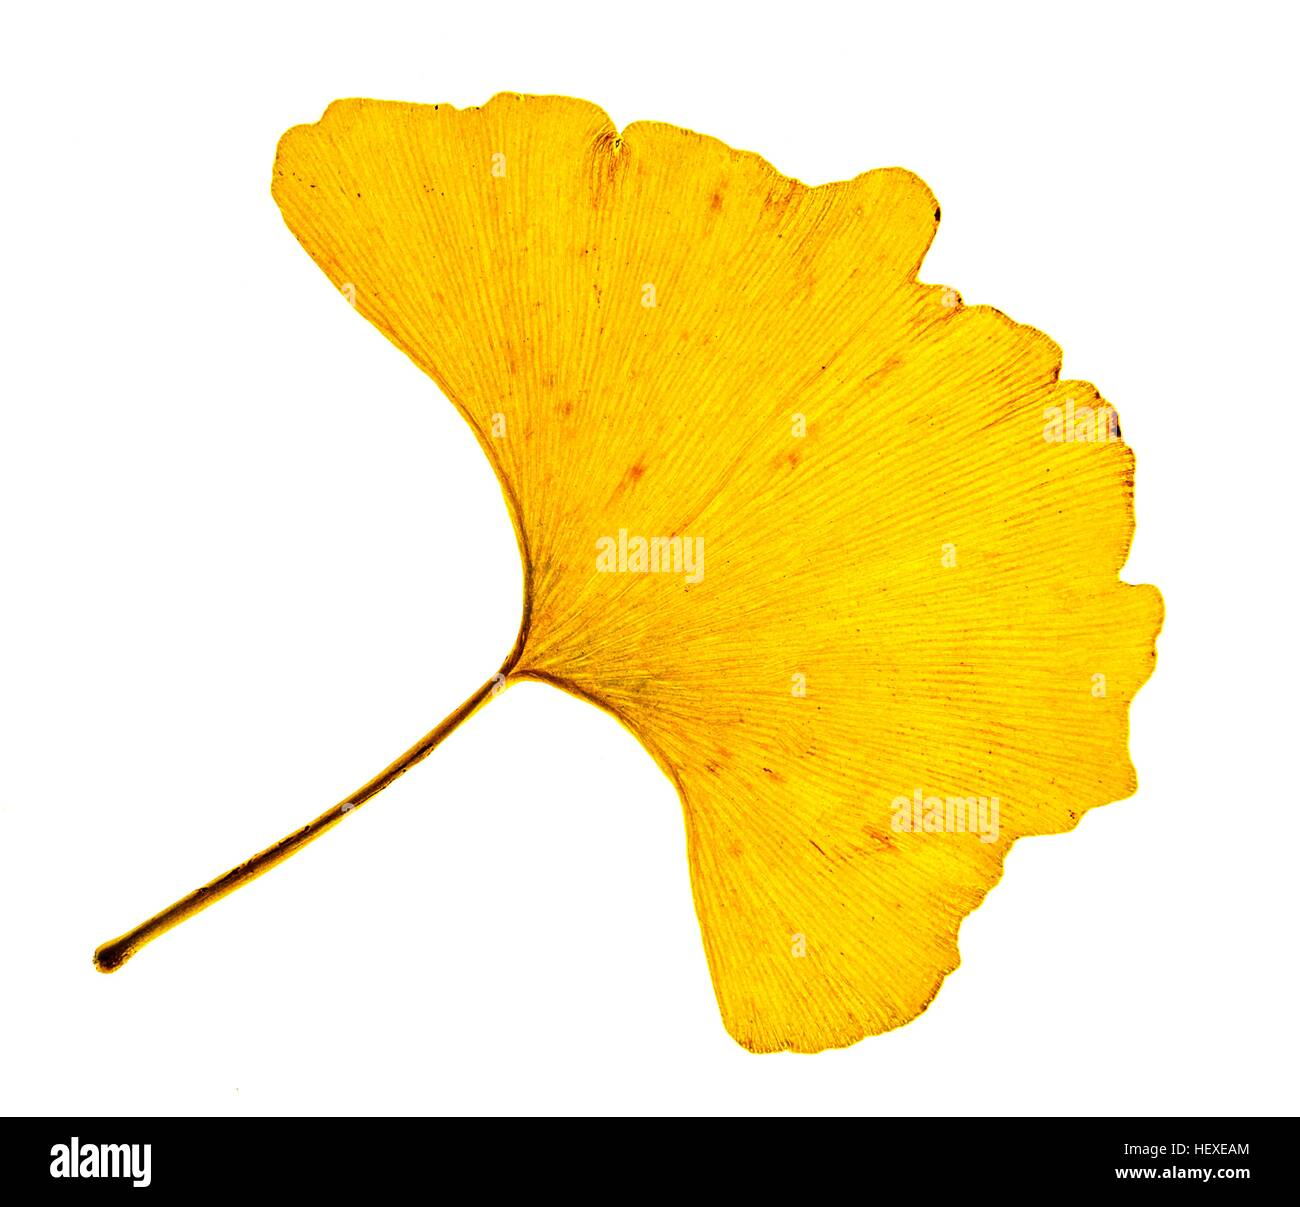 Ginkgo leave in autumn.Leaves of Chinese maidenhair tree (Ginkgo biloba).This two-lobed leaf is unique among trees,in - Stock Image